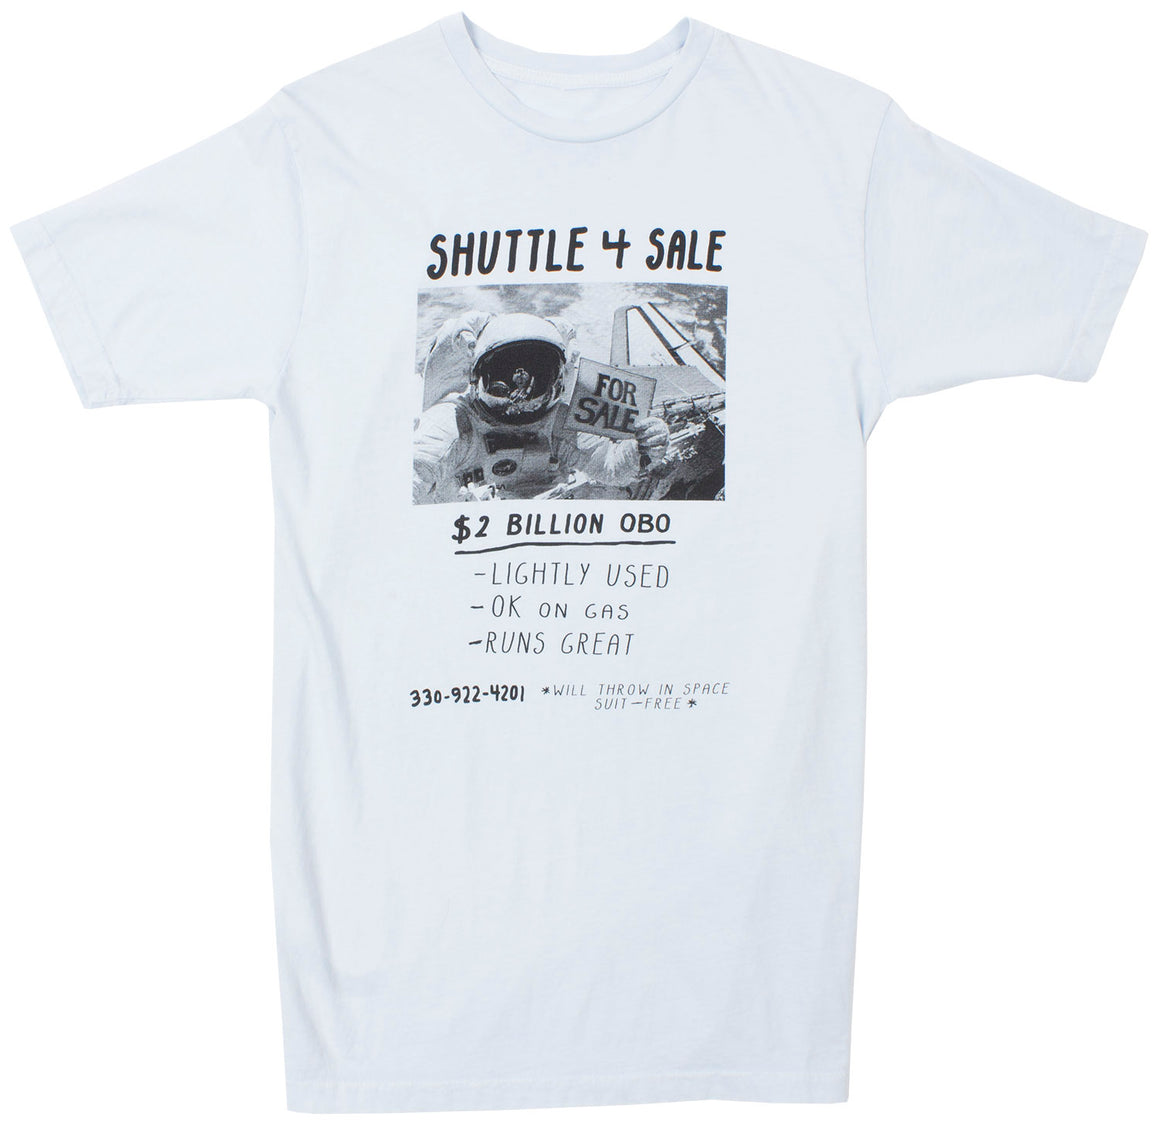 Shuttle 4 Sale, slate blue graphic Tee by Altru Apparel